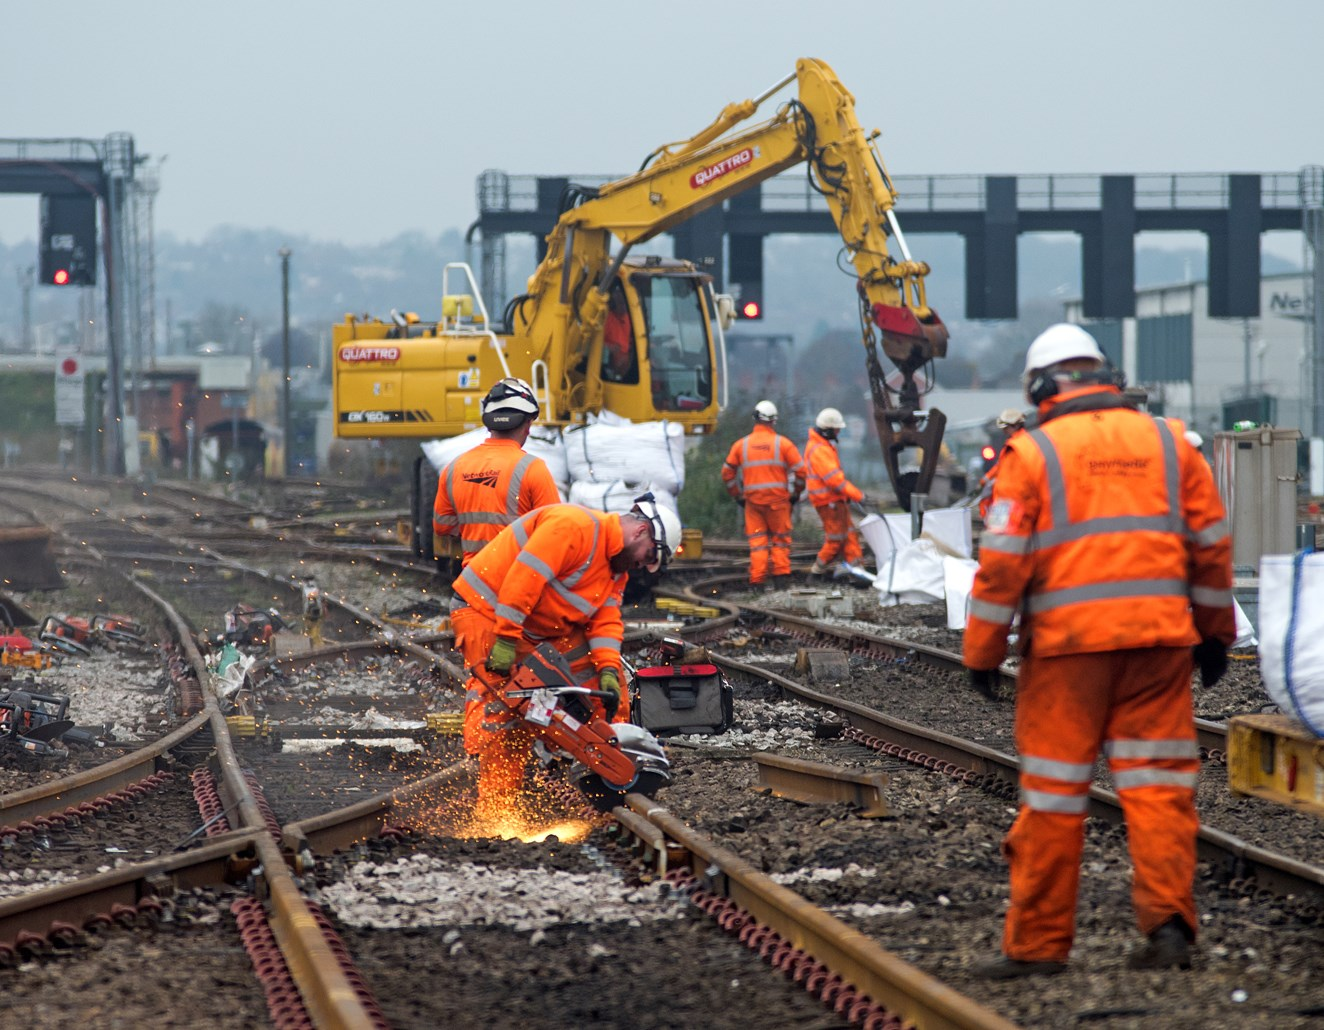 Sunday rail passengers urged to check before travelling ahead of upcoming modernisation work: Cardiff Central modernisation work